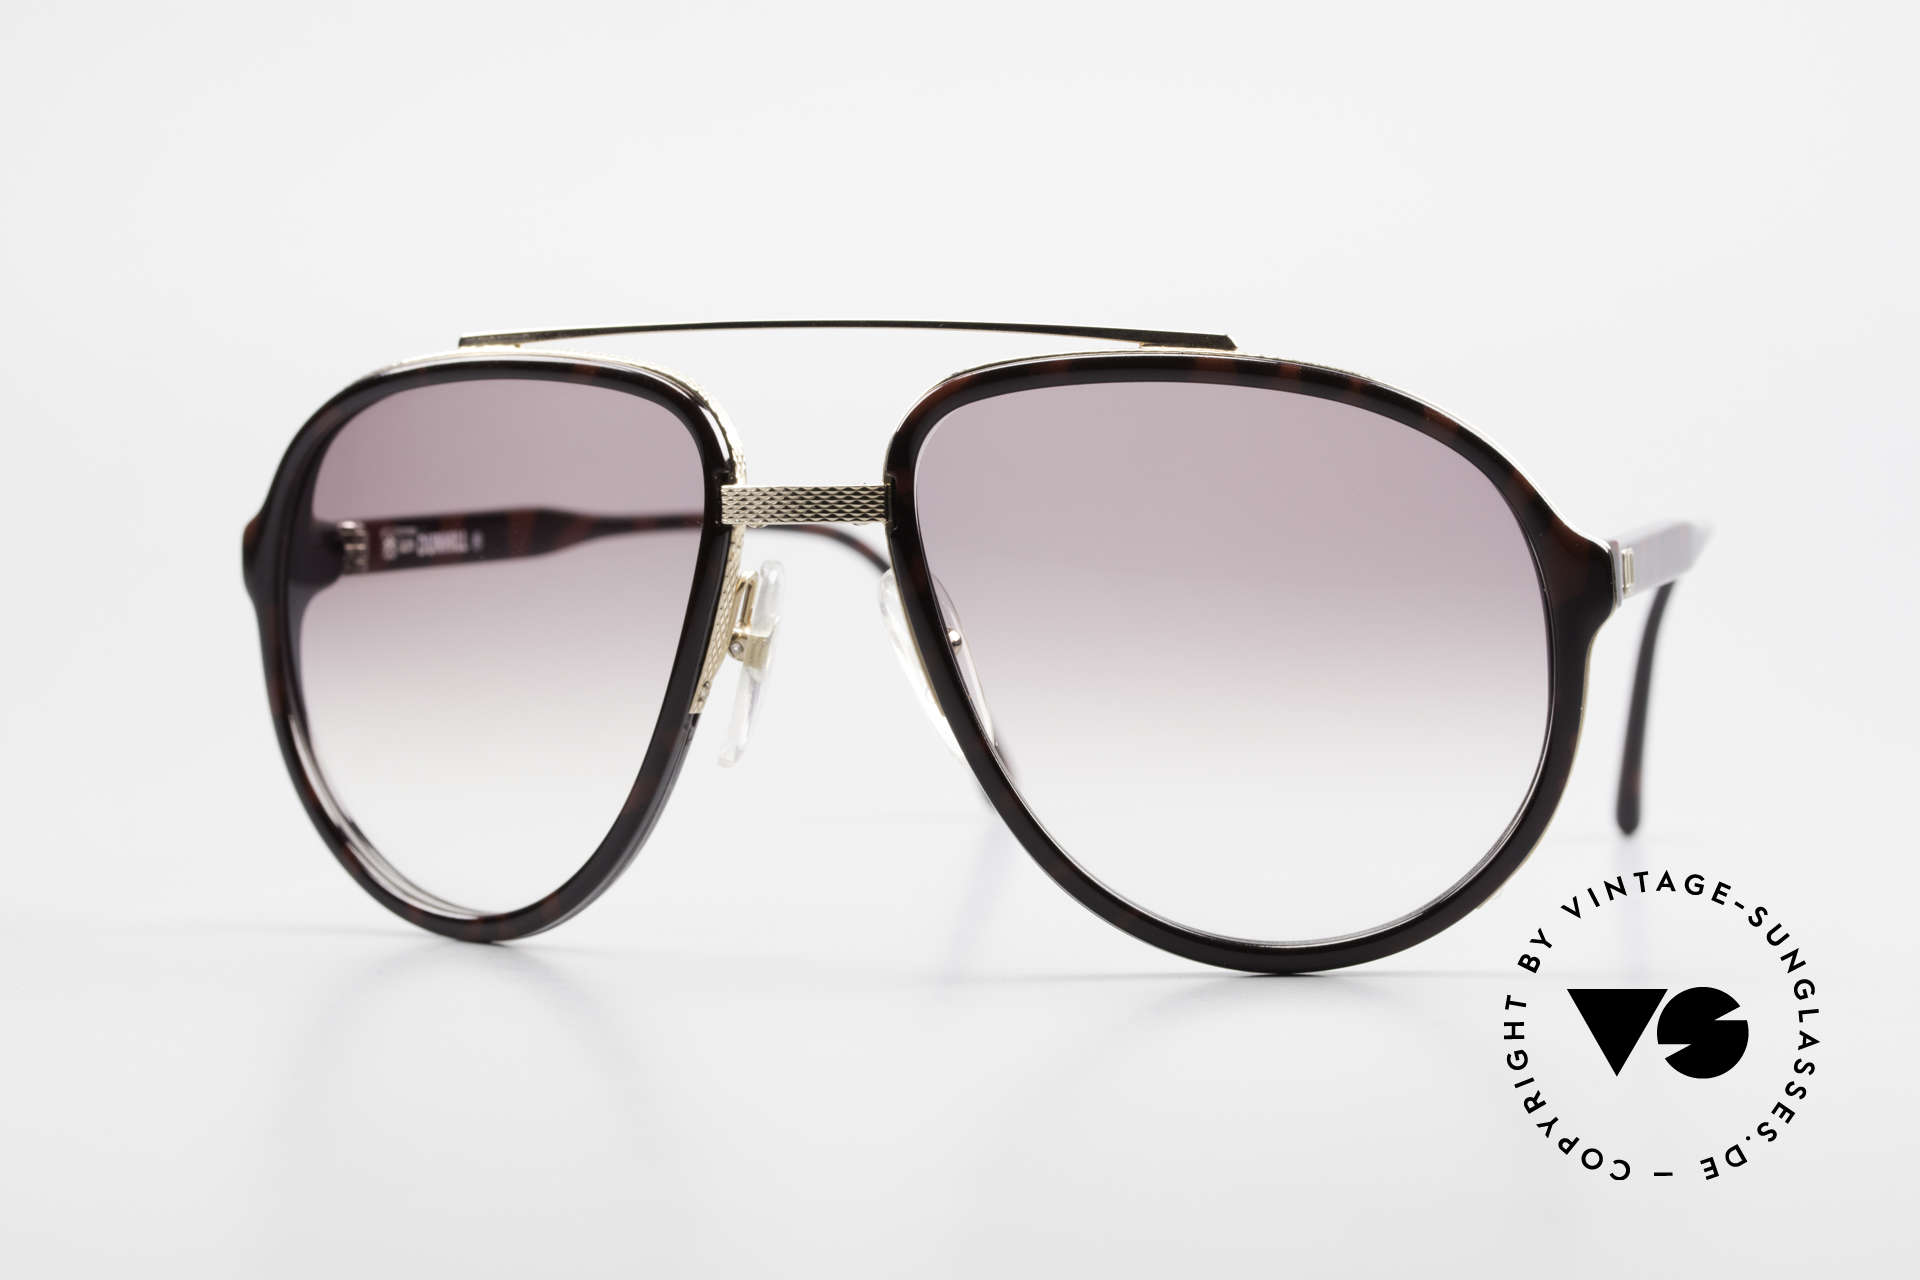 Dunhill 6105 Comfort Fit Luxury Sunglasses, stylish A. Dunhill vintage sunglasses from 1989, Made for Men